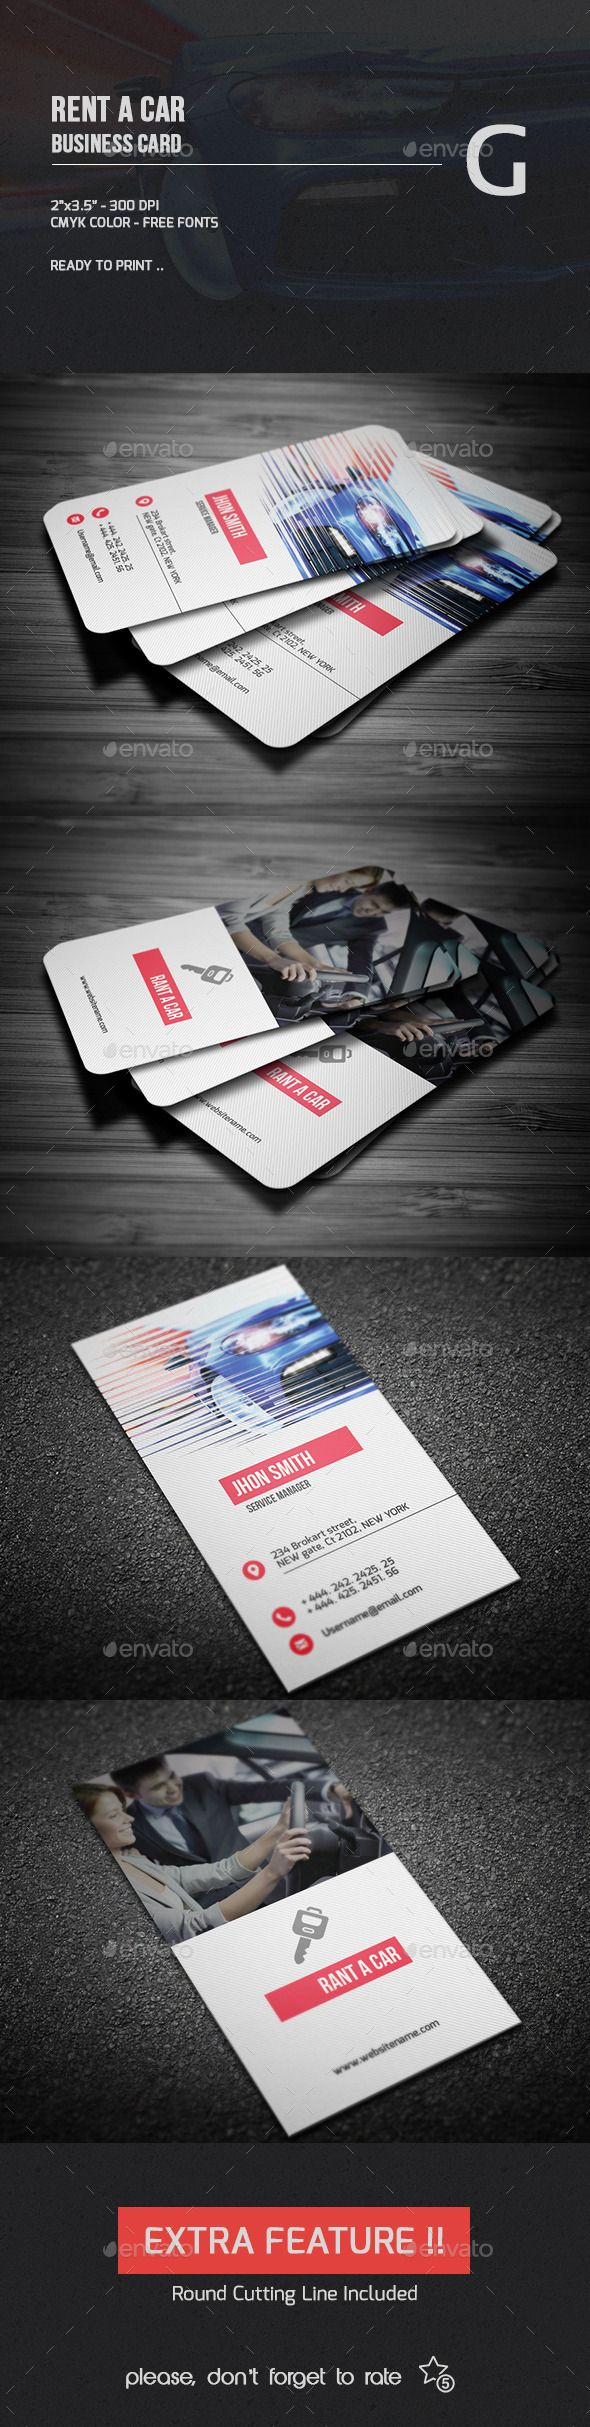 12 best BUSINESS CARD images on Pinterest | Business card design ...